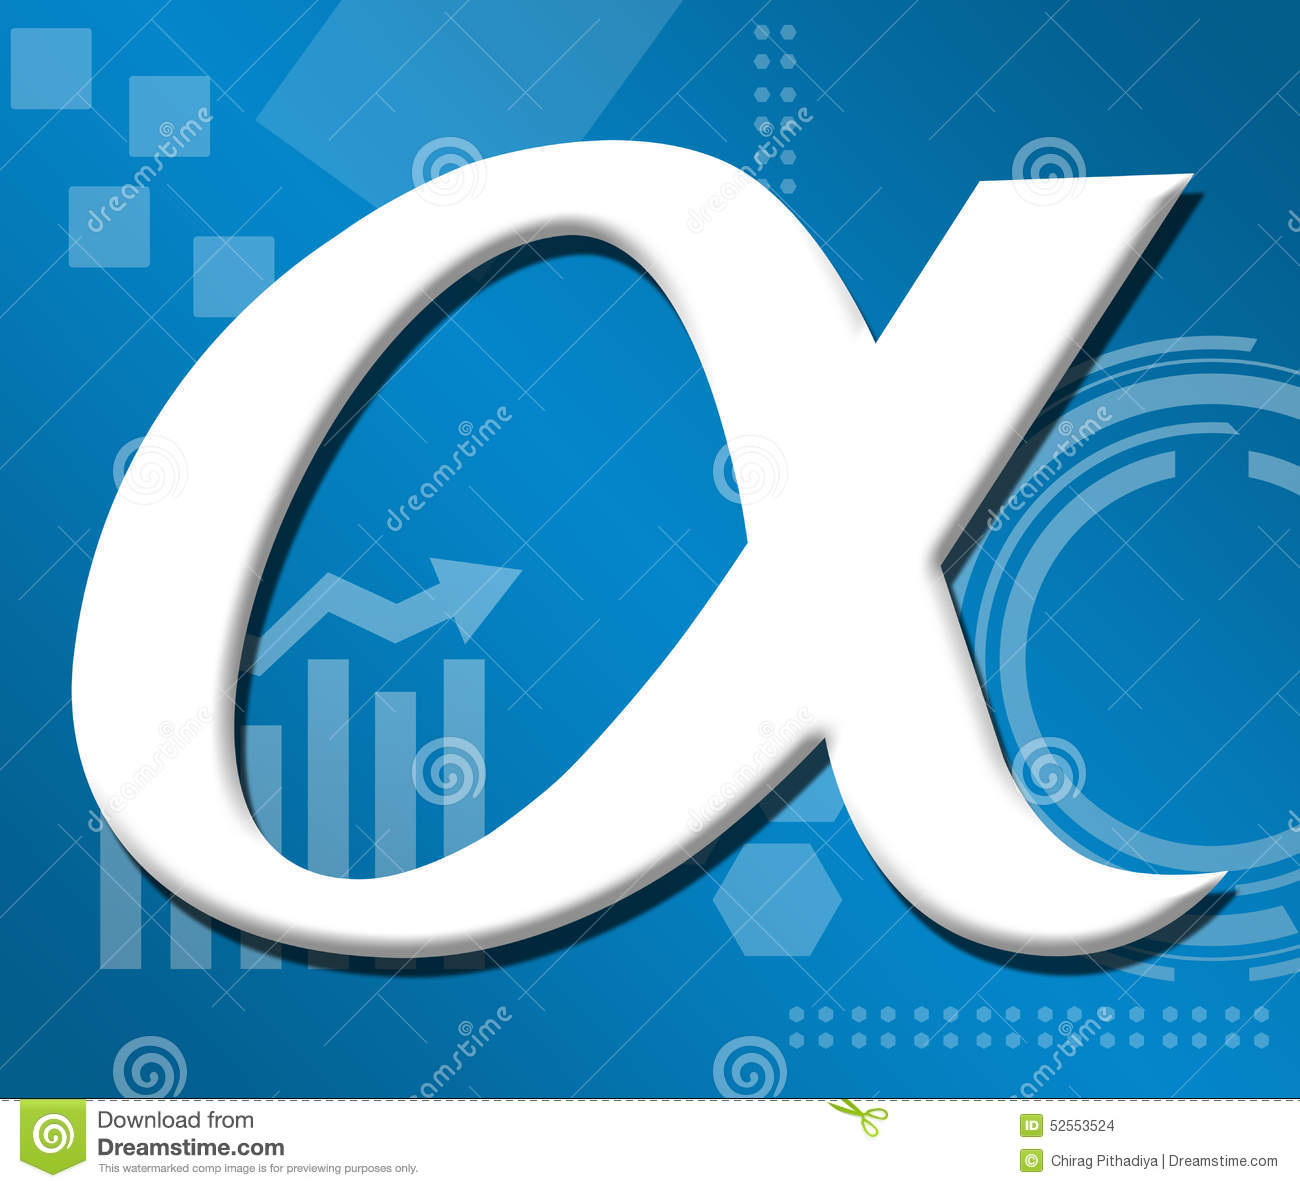 alpha symbol over technical business background stock illustration